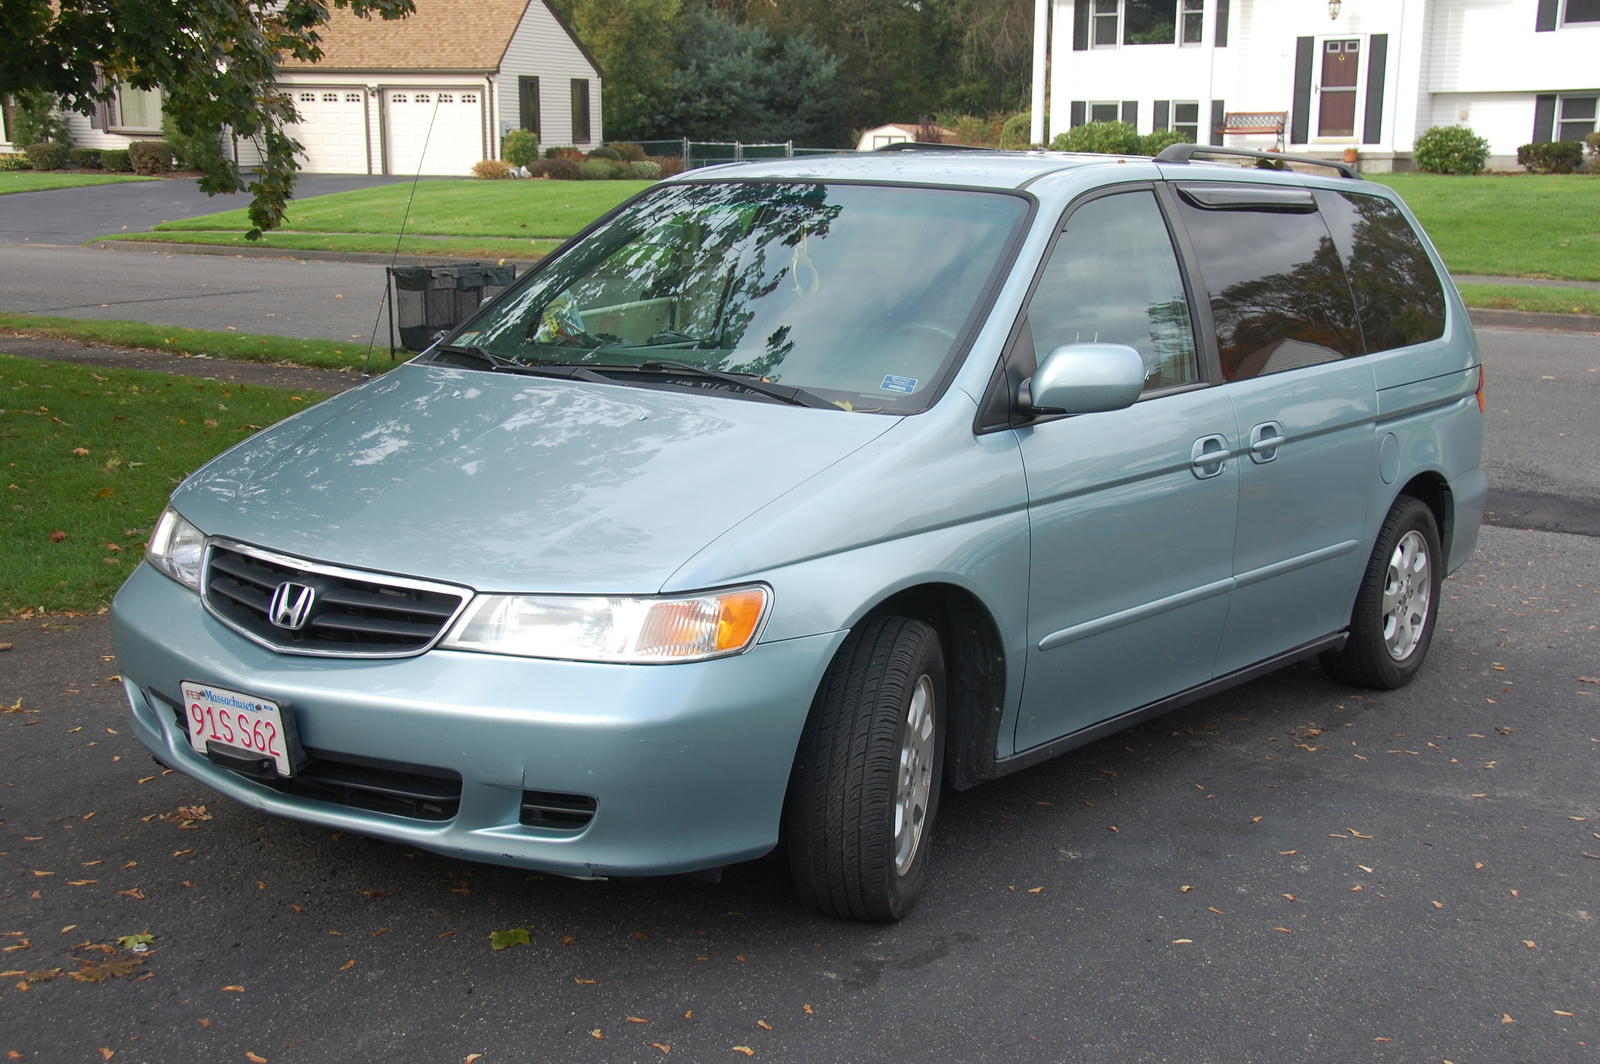 service manual how to hotwire 2003 honda odyssey service manual how to hotwire 2003 honda. Black Bedroom Furniture Sets. Home Design Ideas